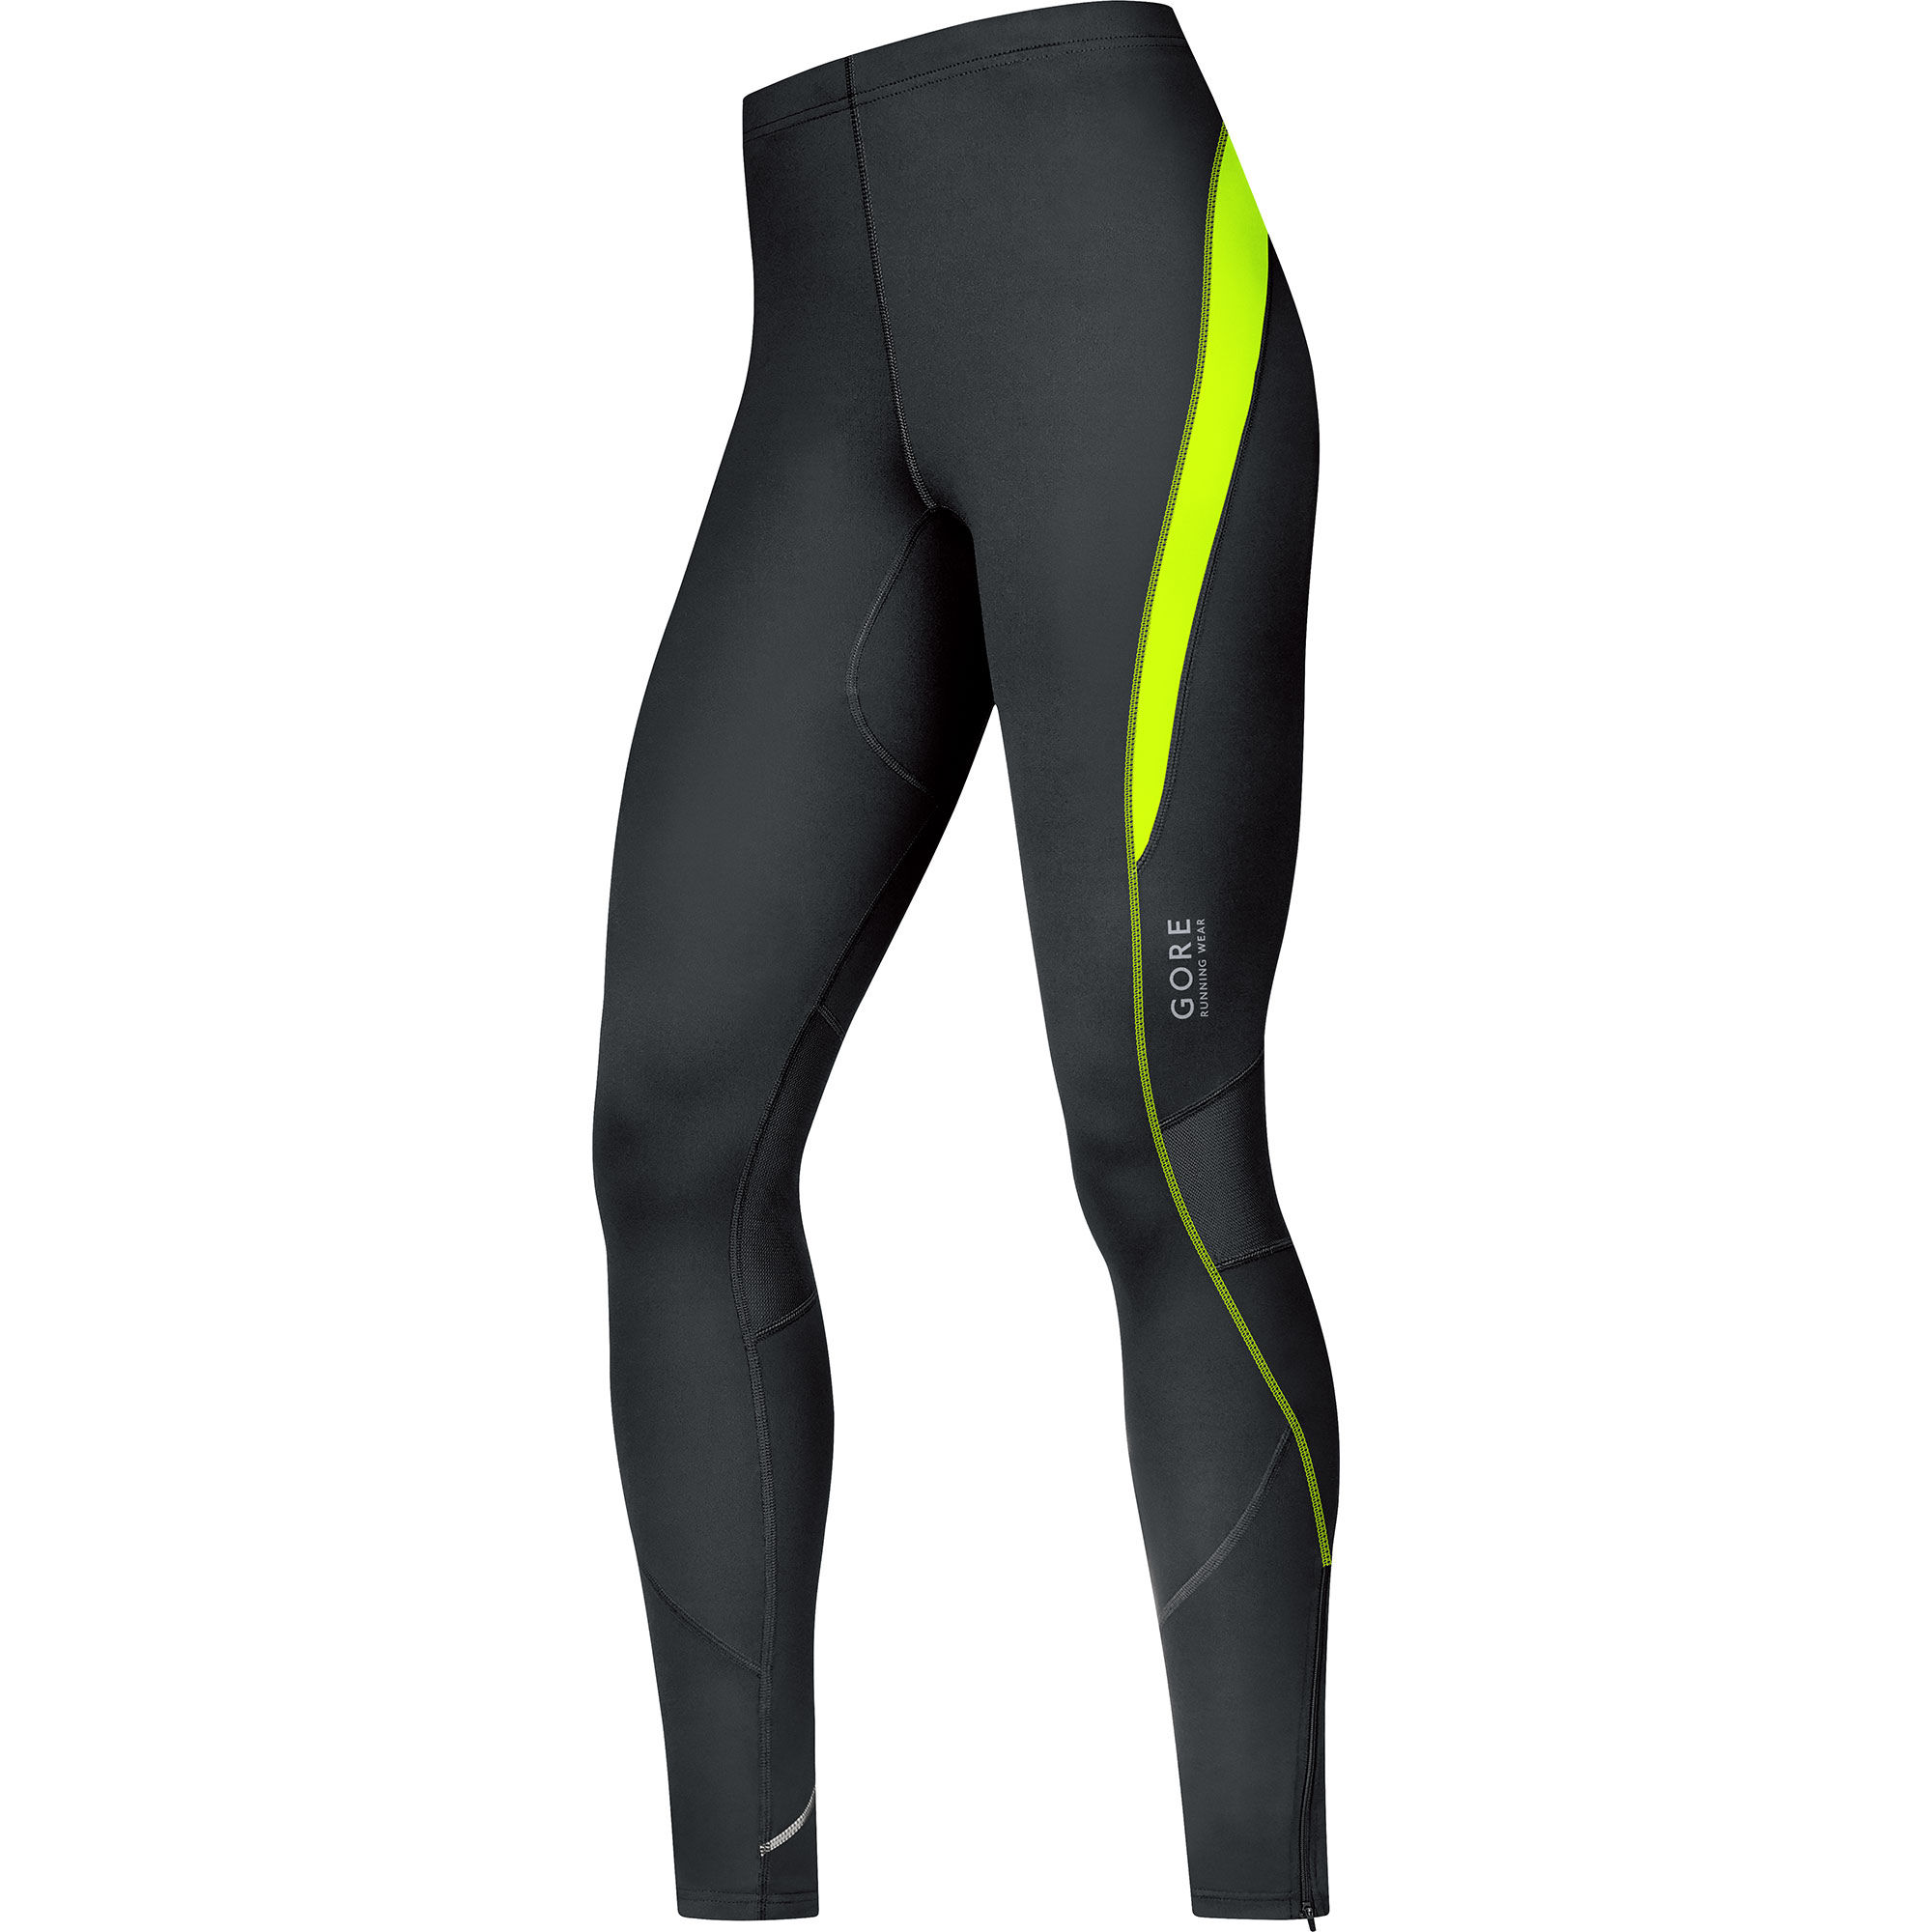 collants de running gore running wear essential tights aw15 wiggle france. Black Bedroom Furniture Sets. Home Design Ideas